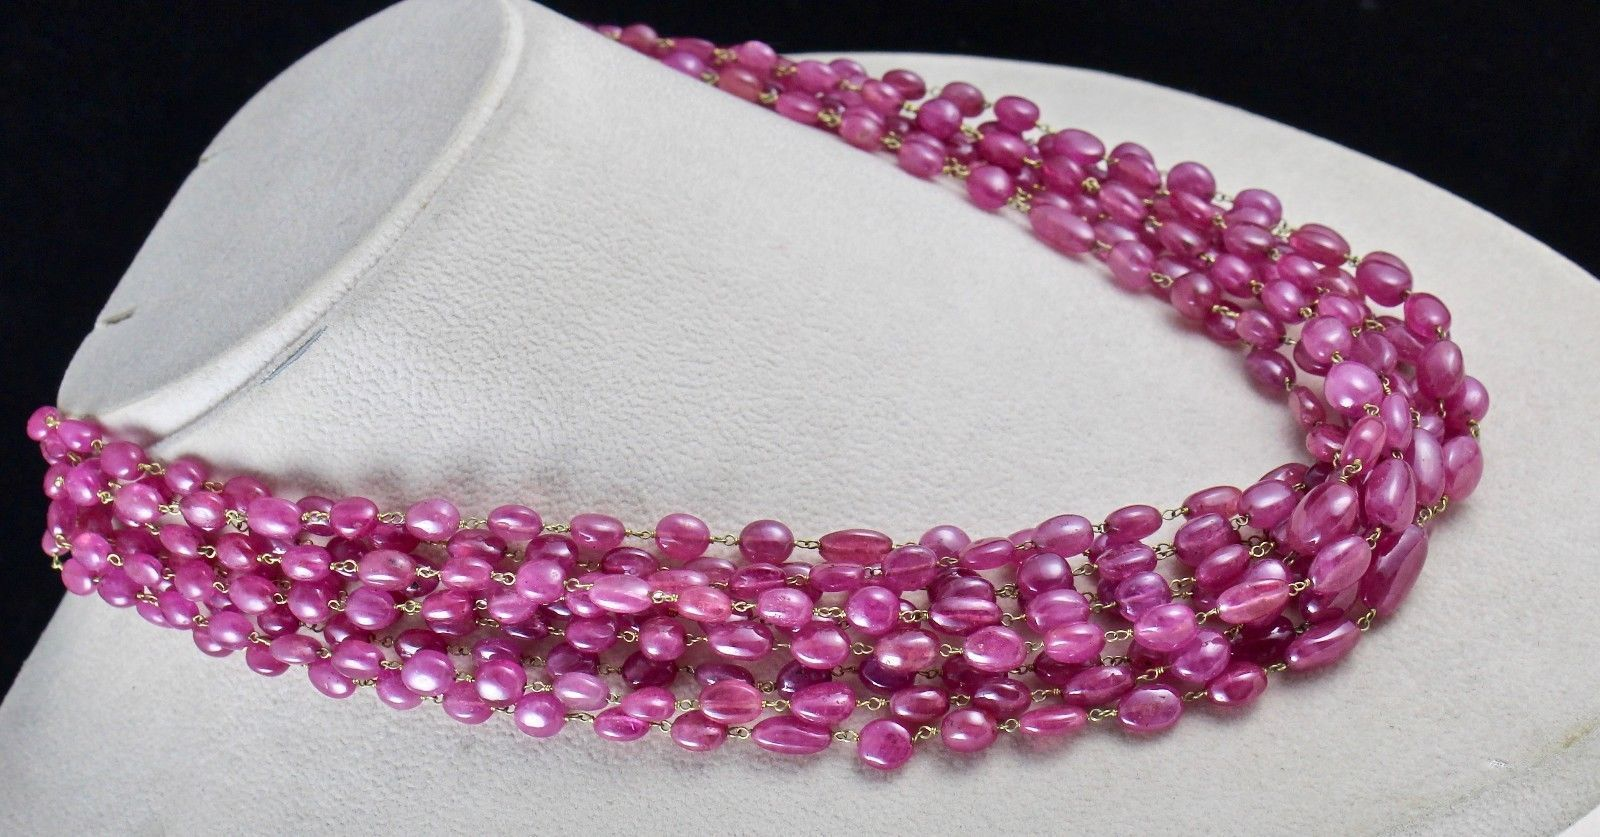 PINK RUBY BEADS CABOCHON 9 LINE 780 CARATS GEMSTONE 18K GOLD LADIES NECKLACE image 5